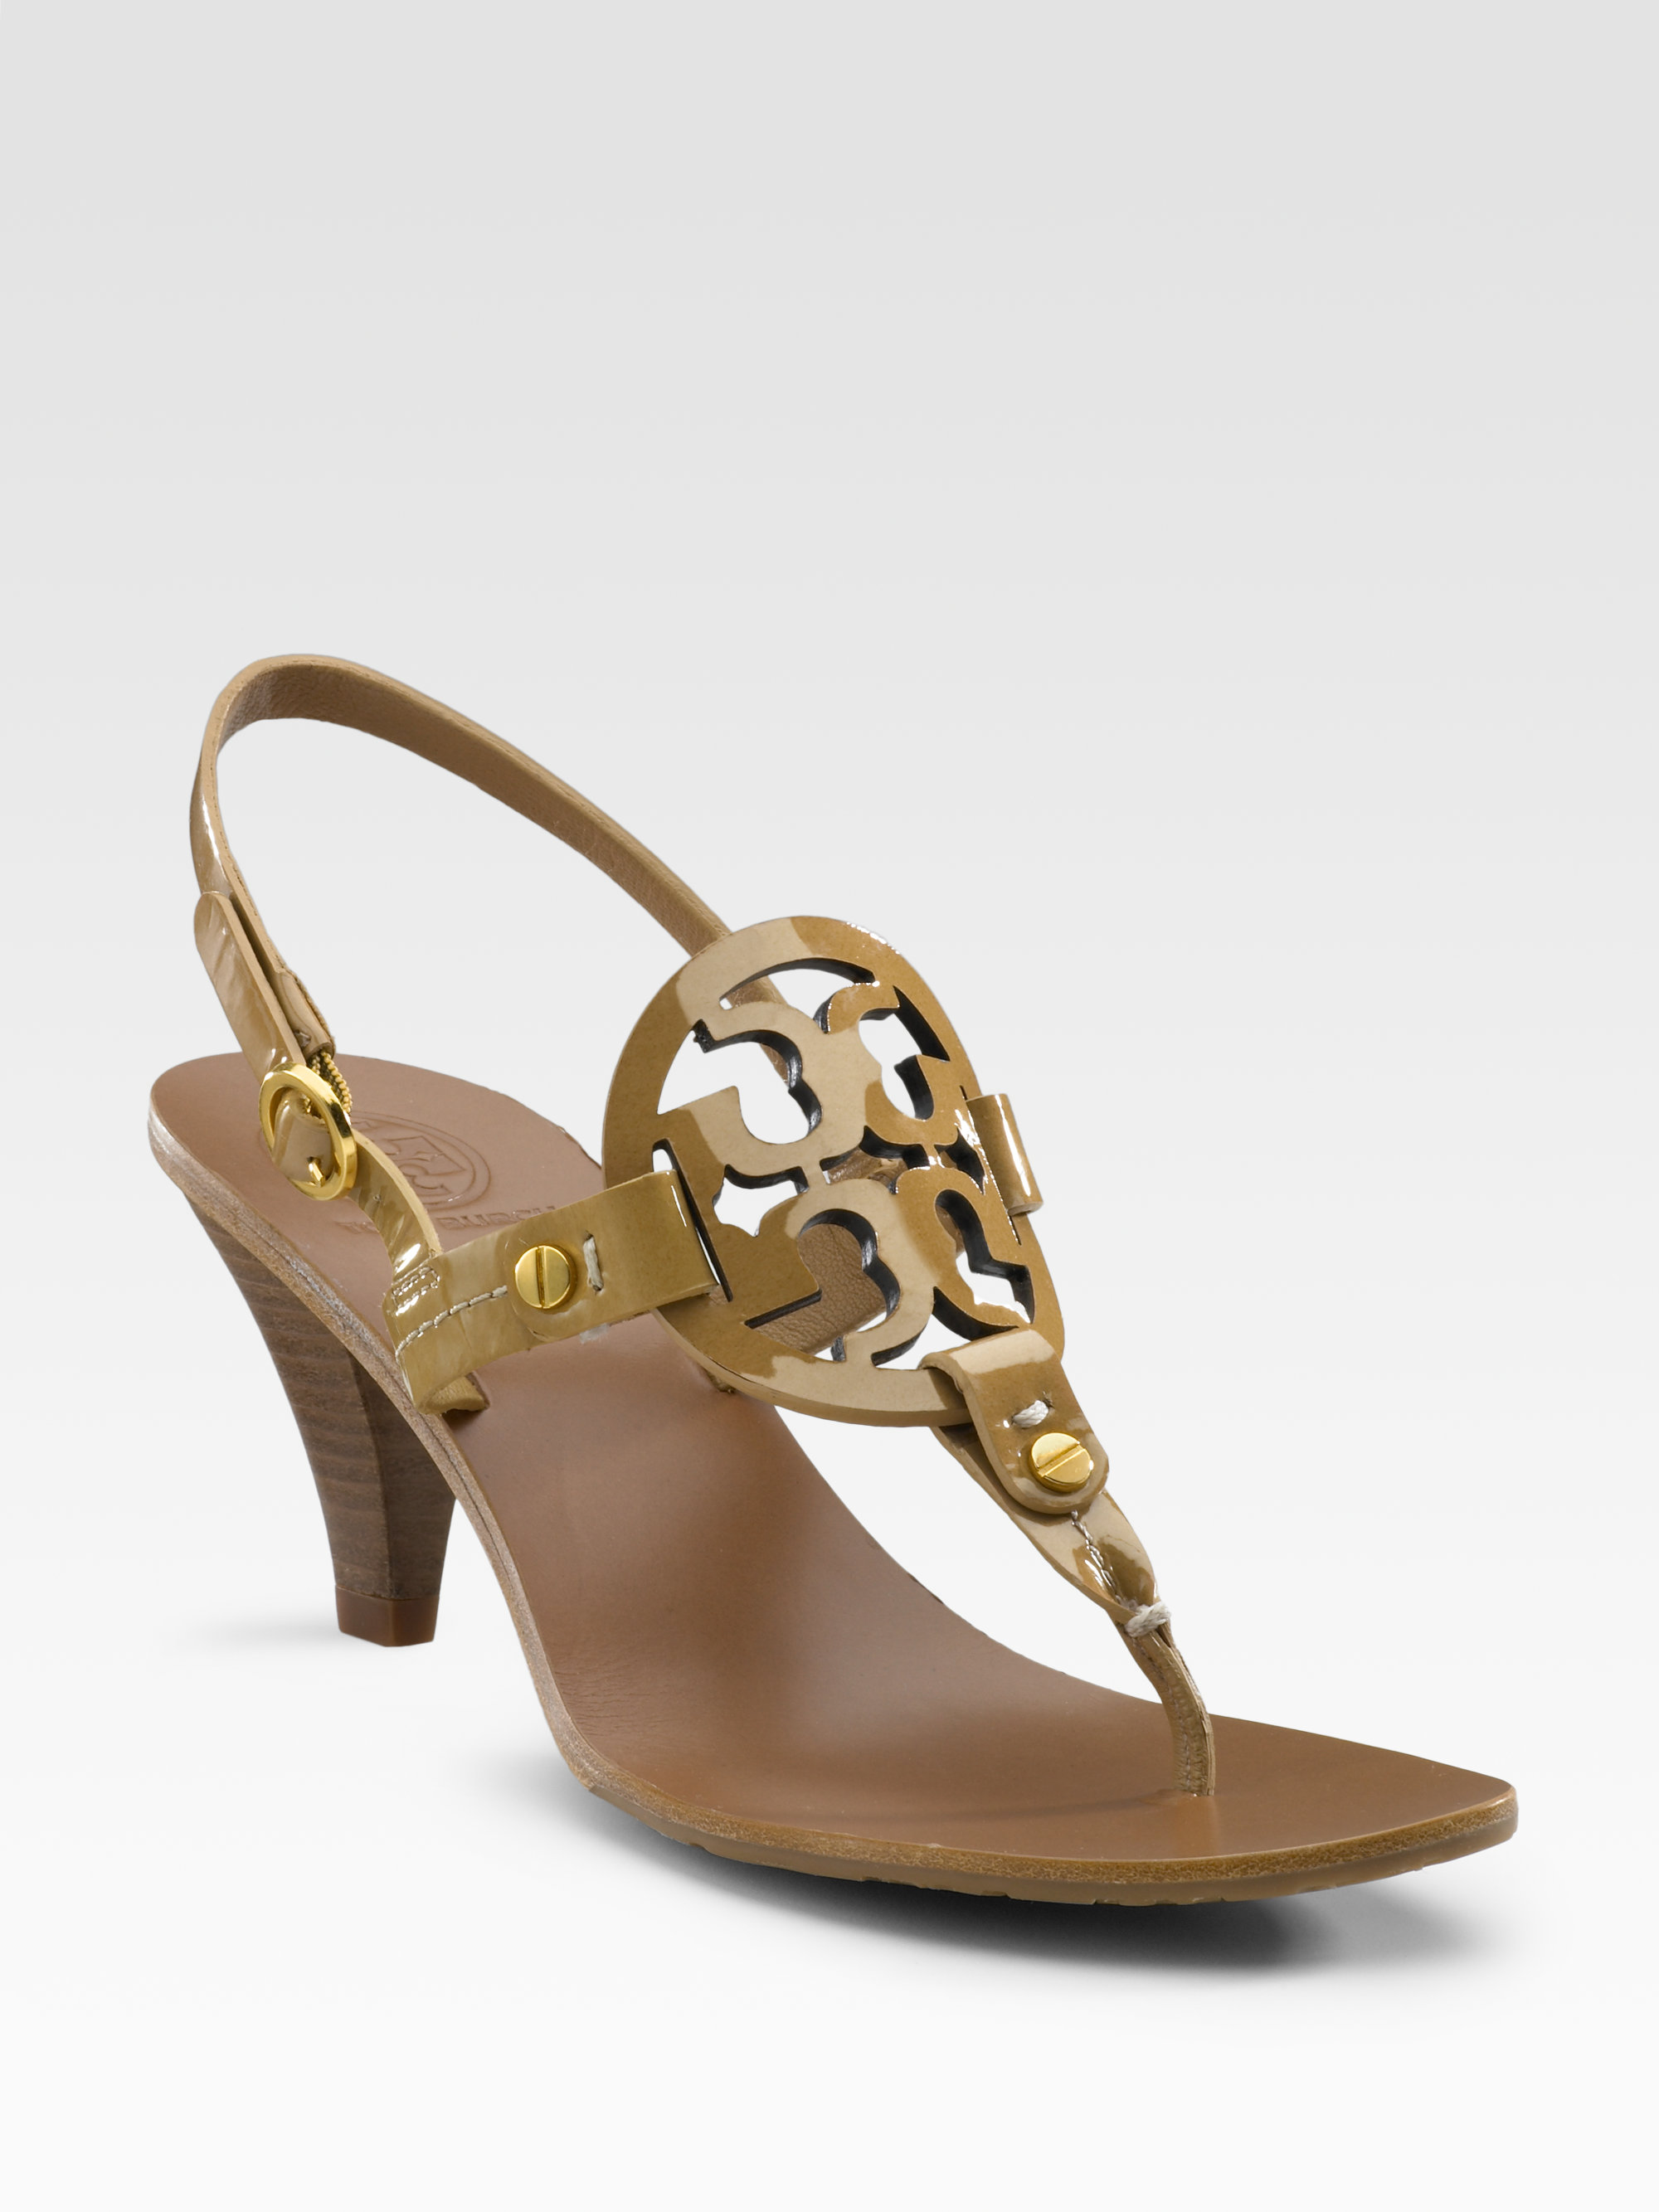 Tory Burch Logo Slingback Sandals pay with visa for sale clearance cheap online latest collections for sale wide range of sale online discount clearance store FfTJMsRx